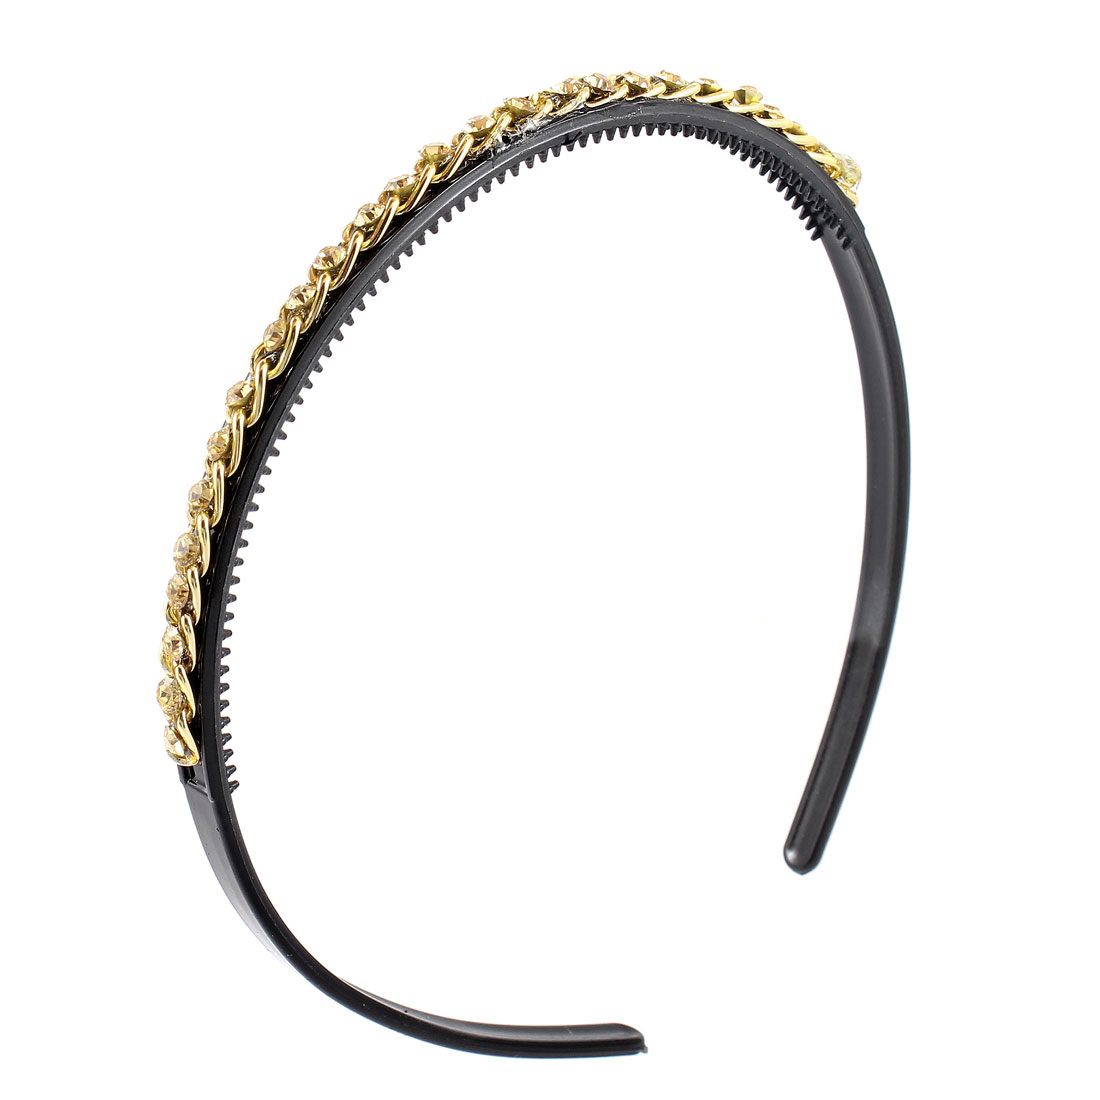 Ladies Gold Tone Rhinestone Metal Chain Decor Black Hair Hoop Band Headband